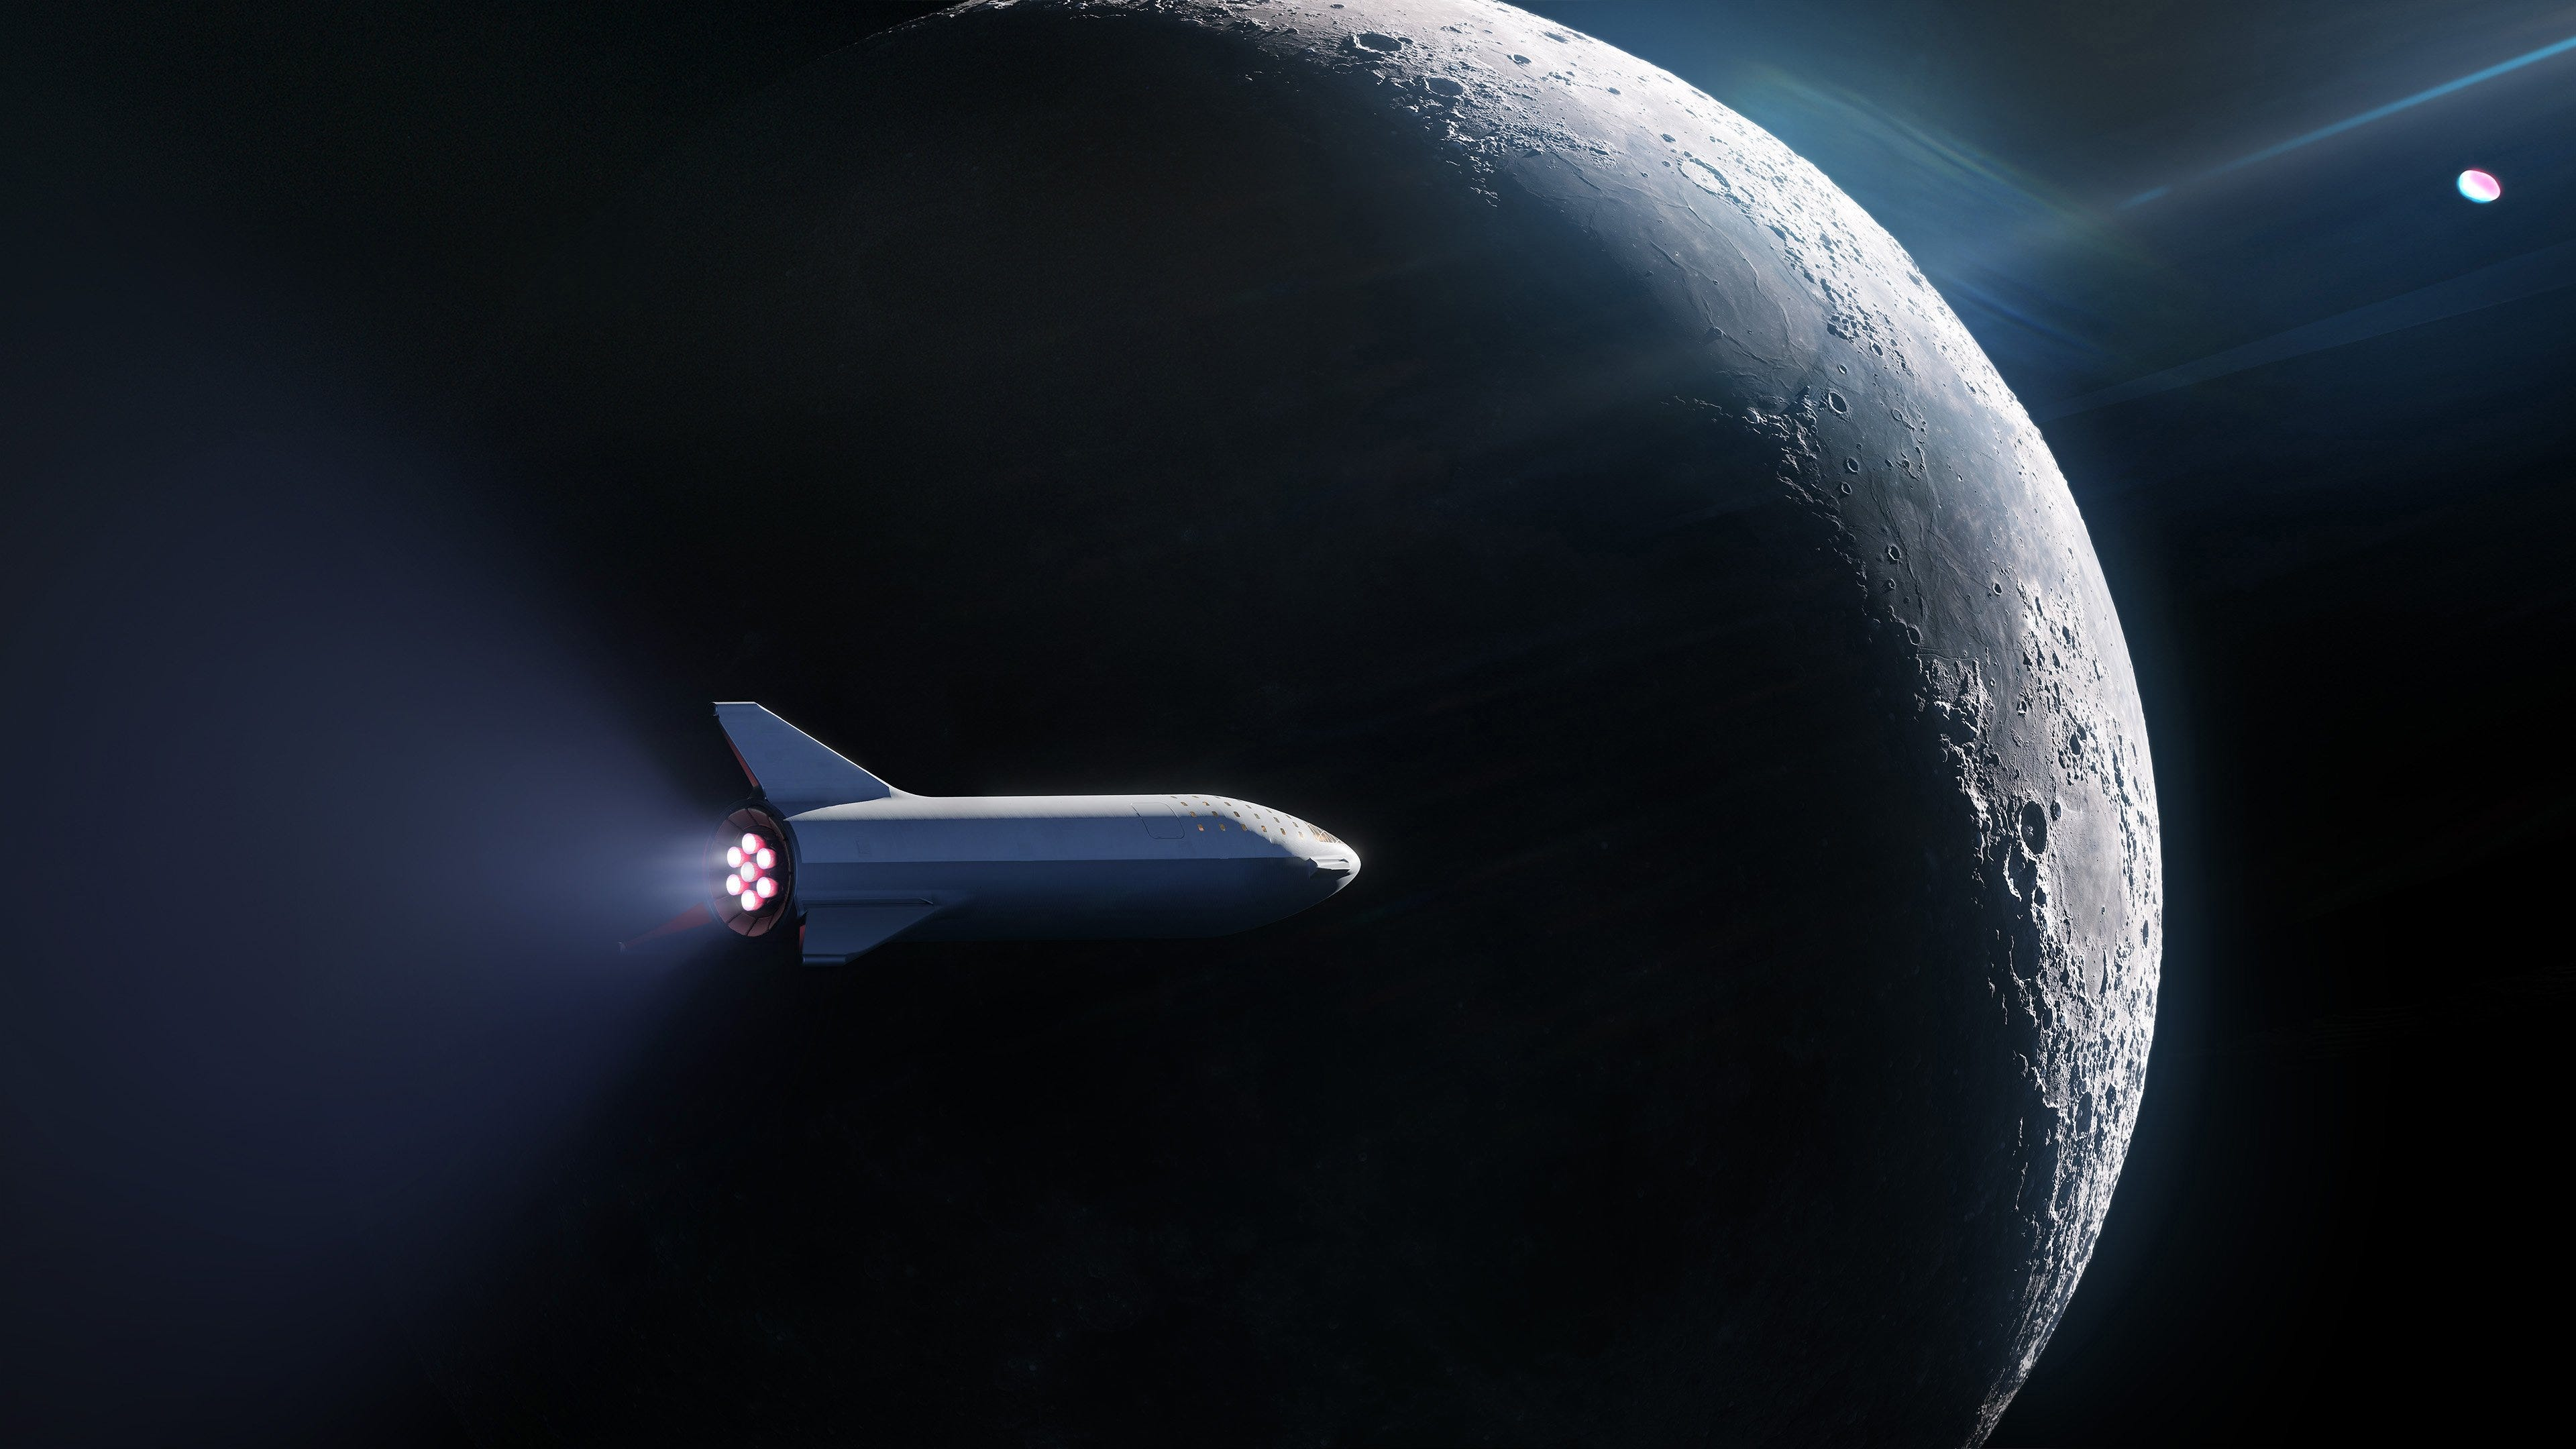 fa7df415-0150-44be-b3ec-c9390dbb1a8f-DnA7hZgU8AAxfxC Watch SpaceX announce who will launch on its BFR vehicle to the moon